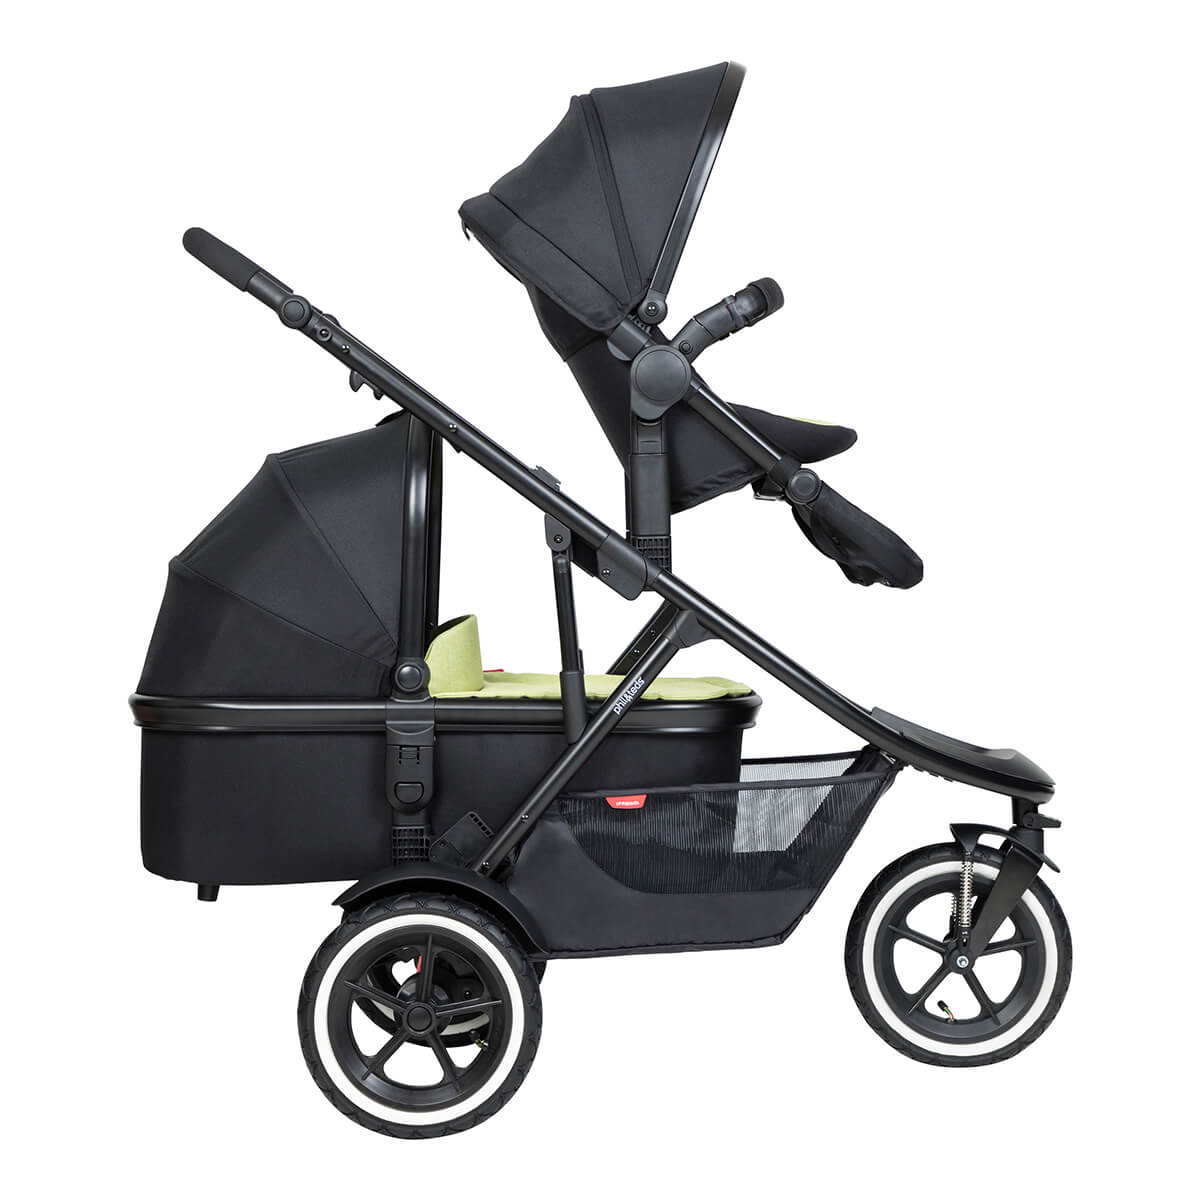 https://cdn.accentuate.io/4394651156568/19272668282968/philteds-sport-buggy-with-double-kit-extended-clip-and-snug-carrycot-side-view-v1626484292306.jpg?1200x1200